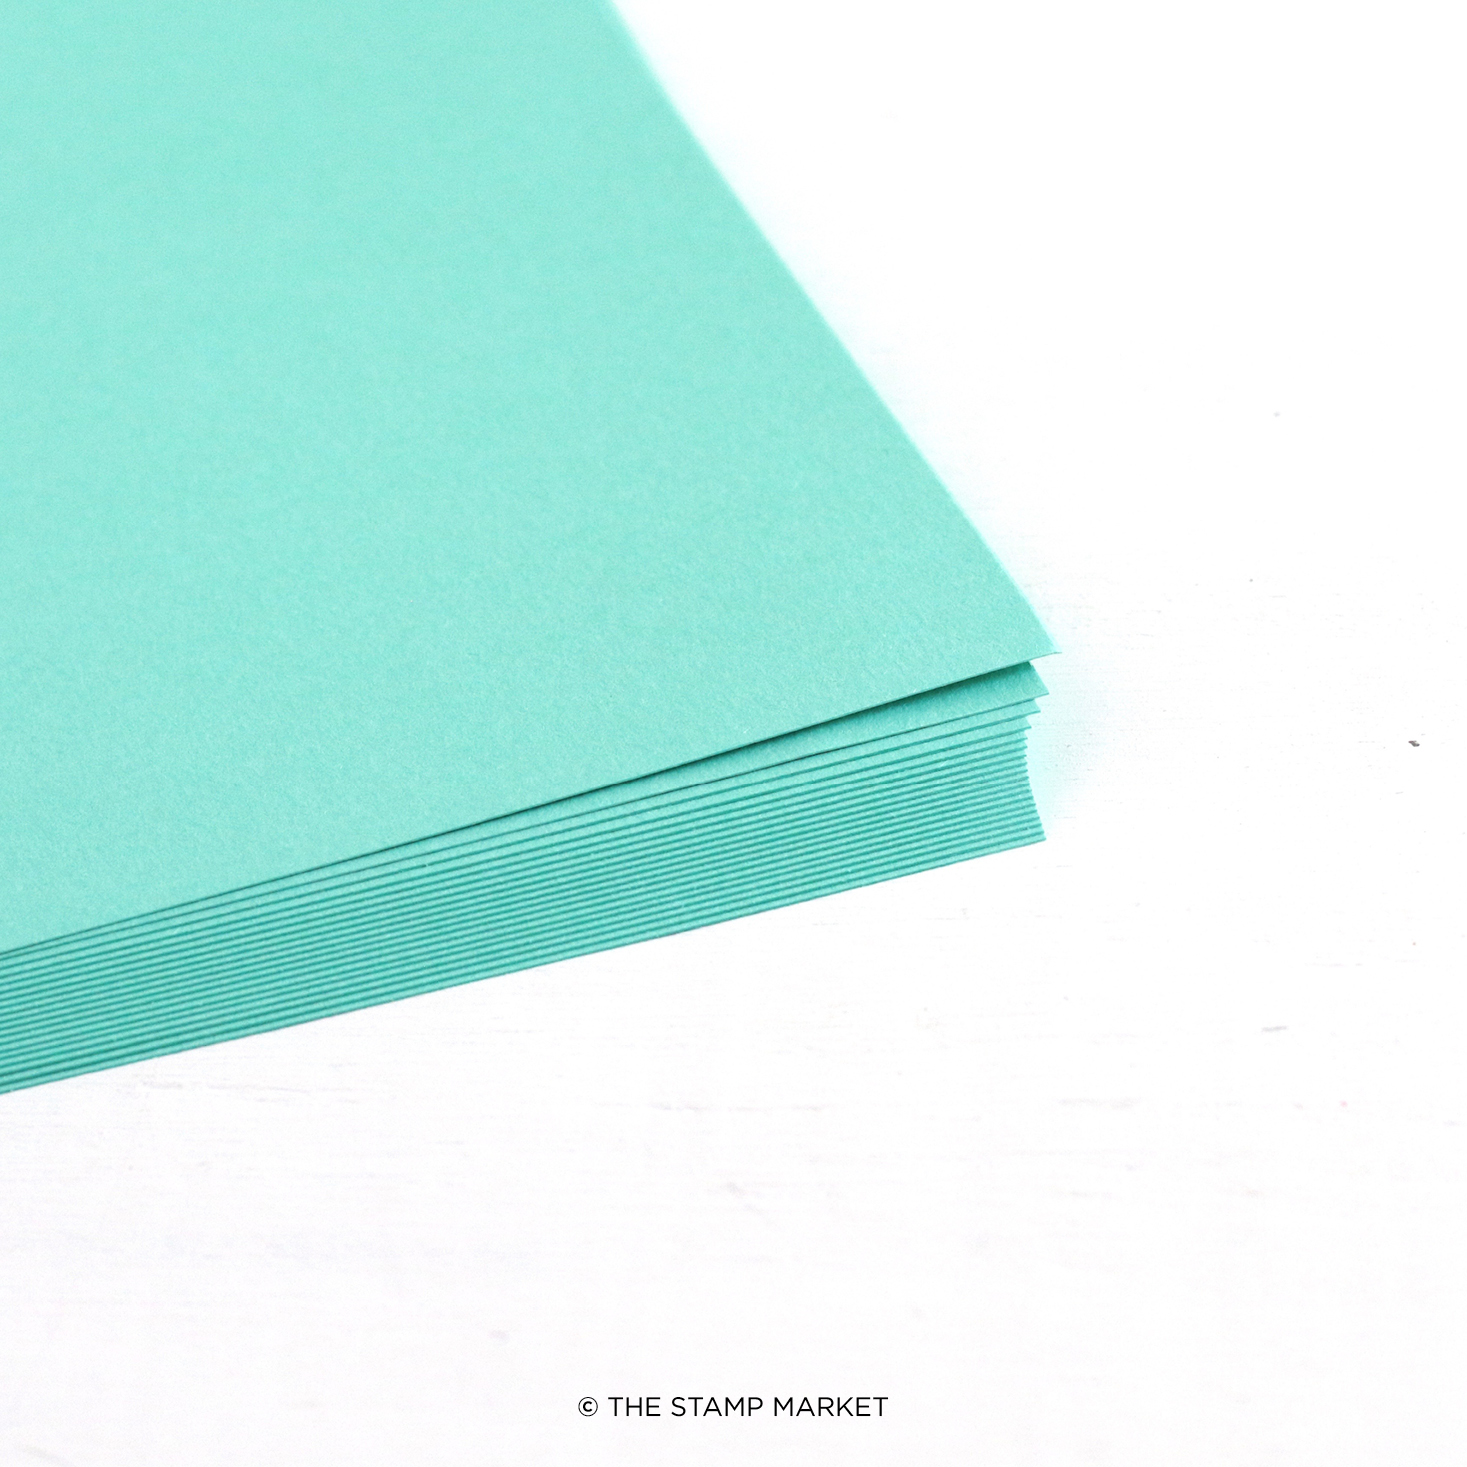 The Stamp Market - Color Crush Cardstock (5 Sheets Each) - Tropic Teal